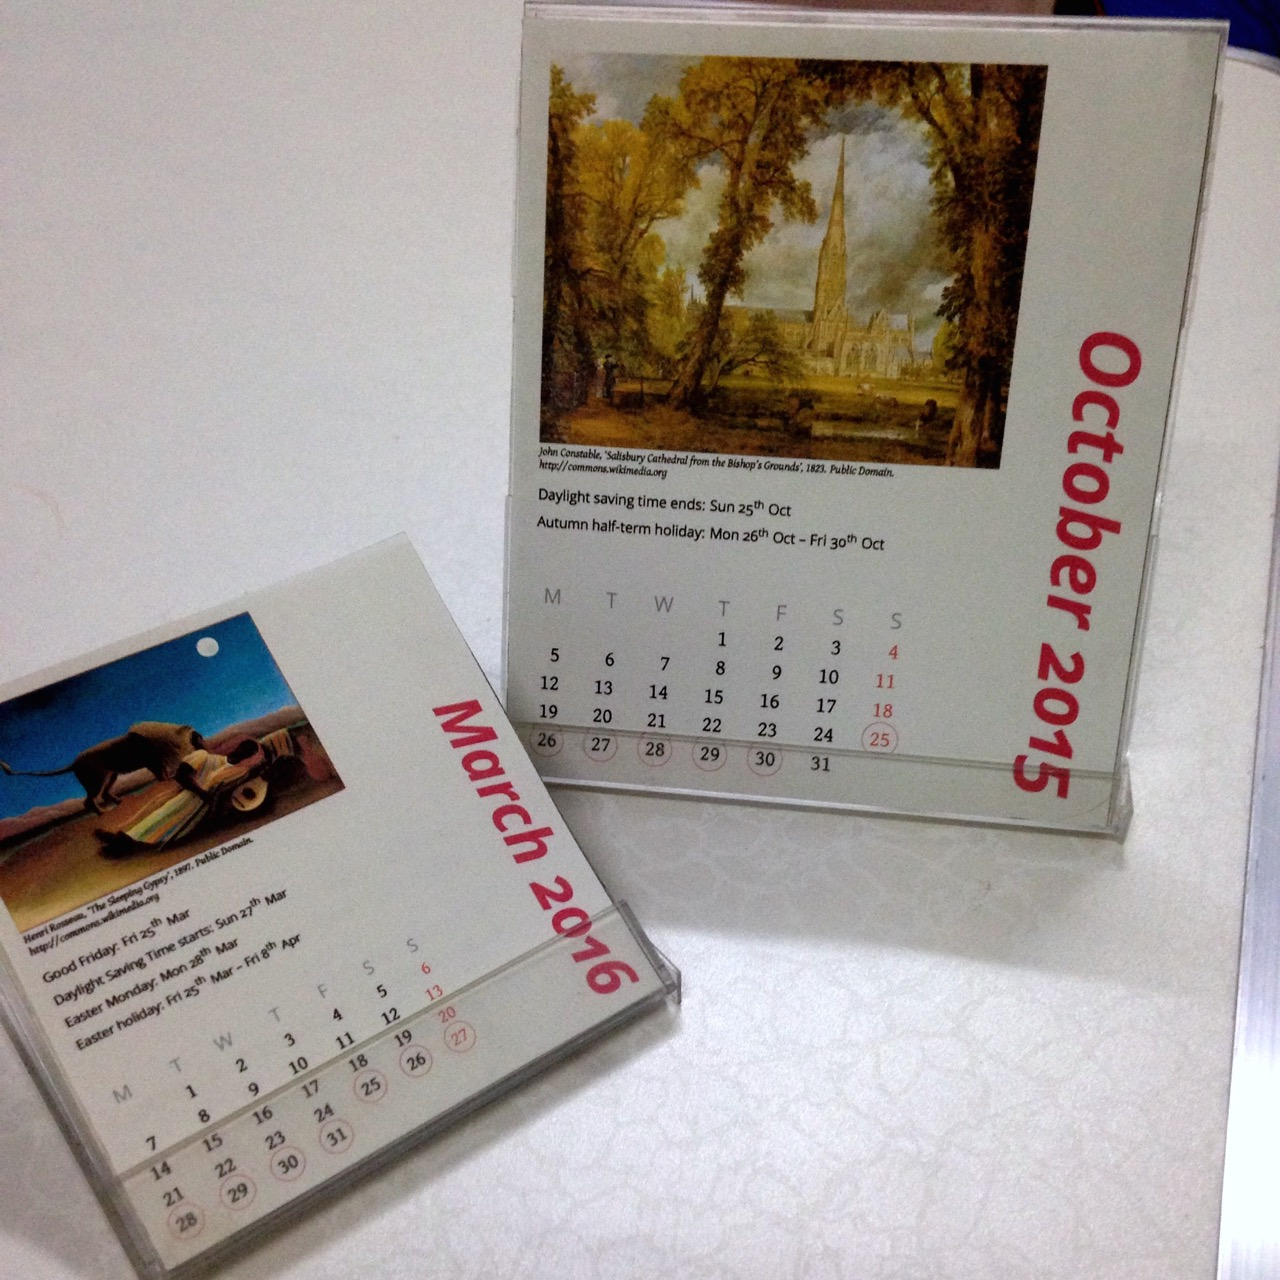 A multilingual, customisable CD/floppy disk jewel case calendar with LaTeX